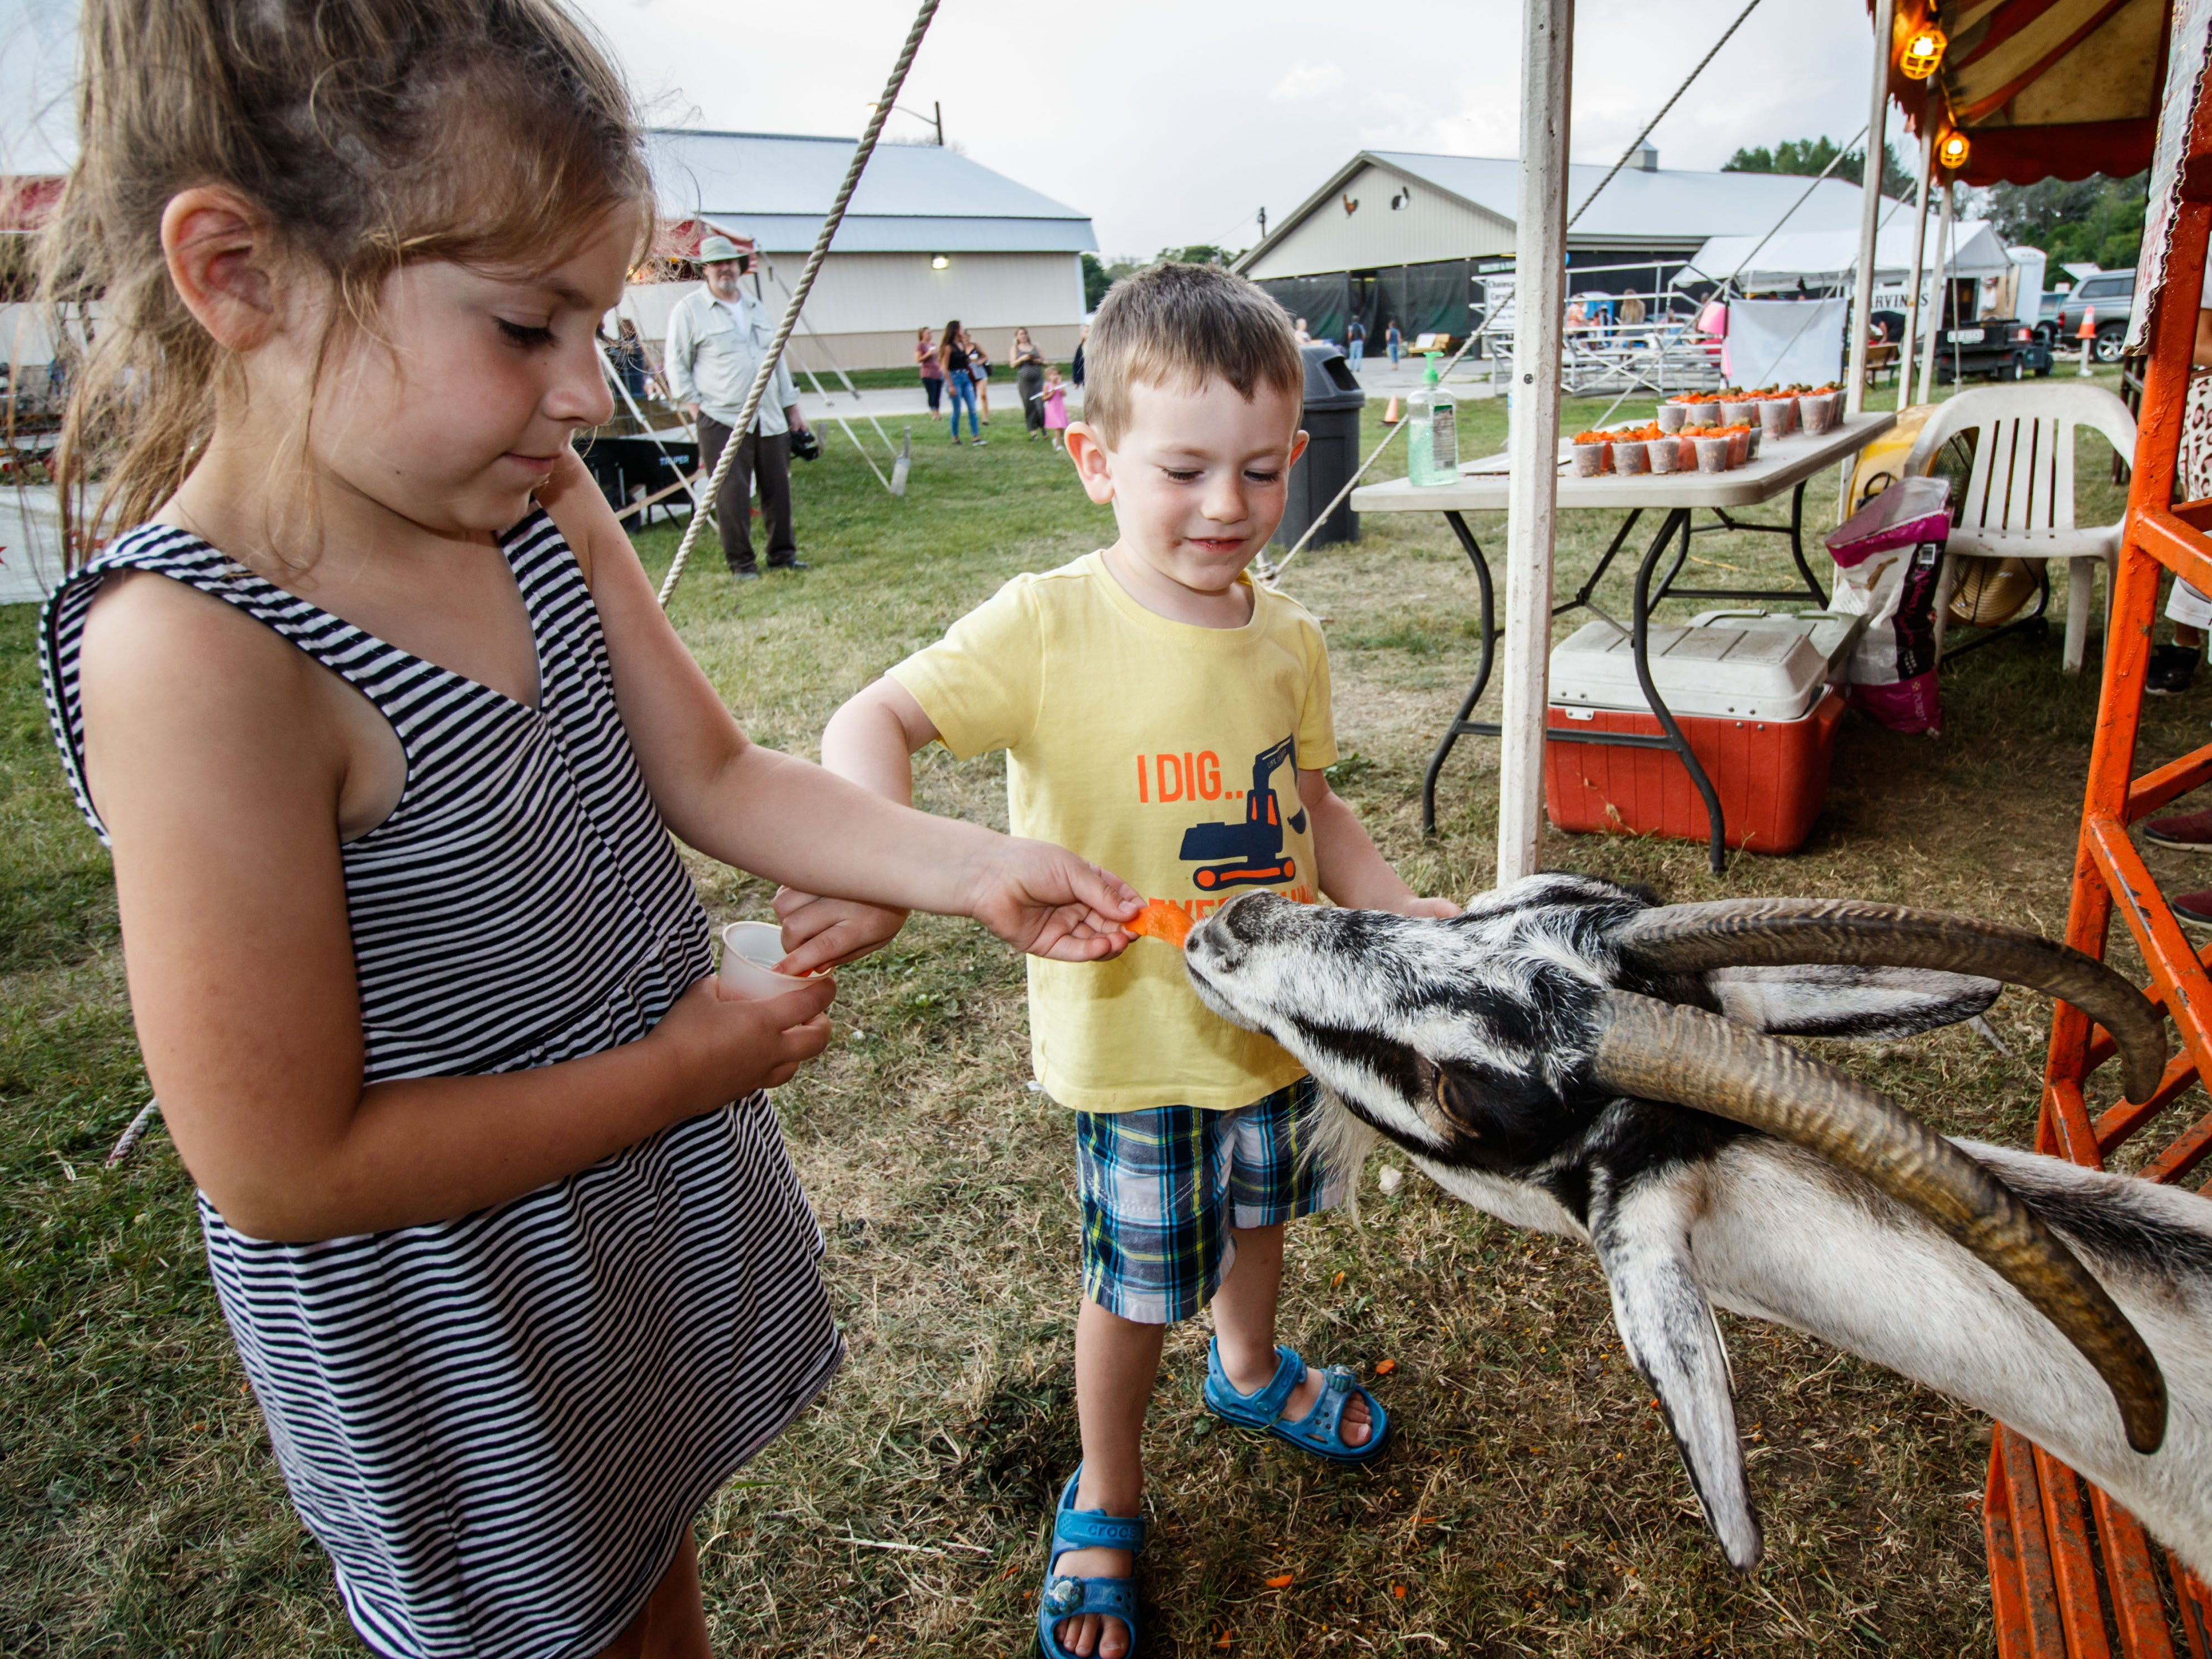 Five-year-old Clare Abrahamson and her brother Cole, 3, of Cedarburg make a new friend at the petting zoo during opening day of the Ozaukee County Fair in Cedarburg on Wednesday, August 1, 2018.